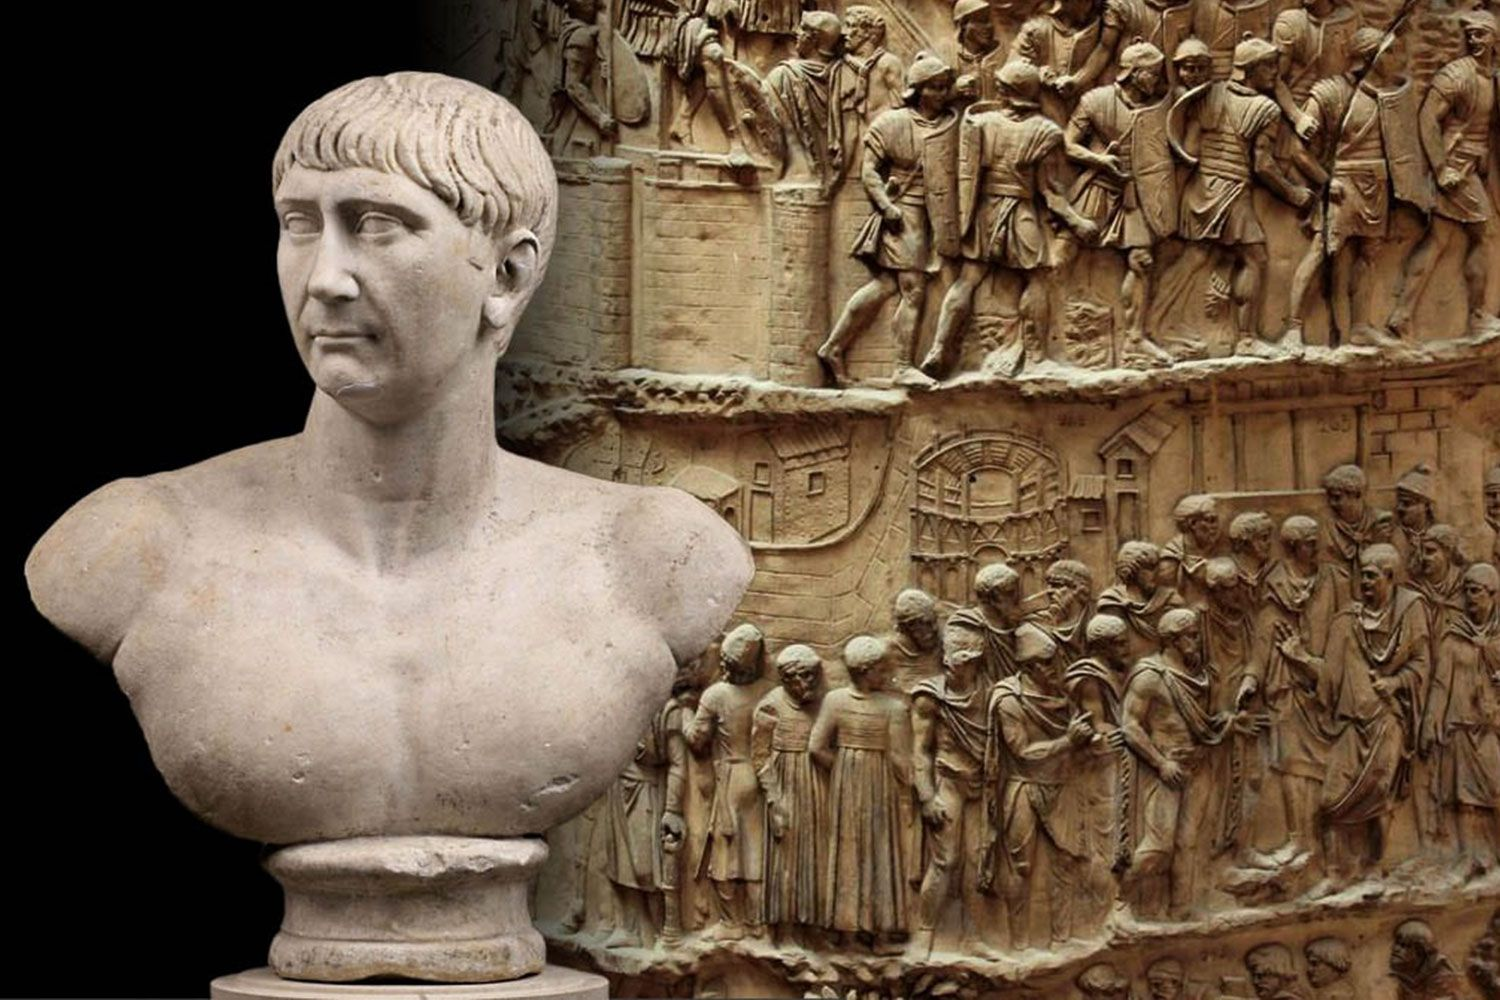 Trajan's Column, probably the work of the architect Apollodorus of Damascus and was completed in AD 113